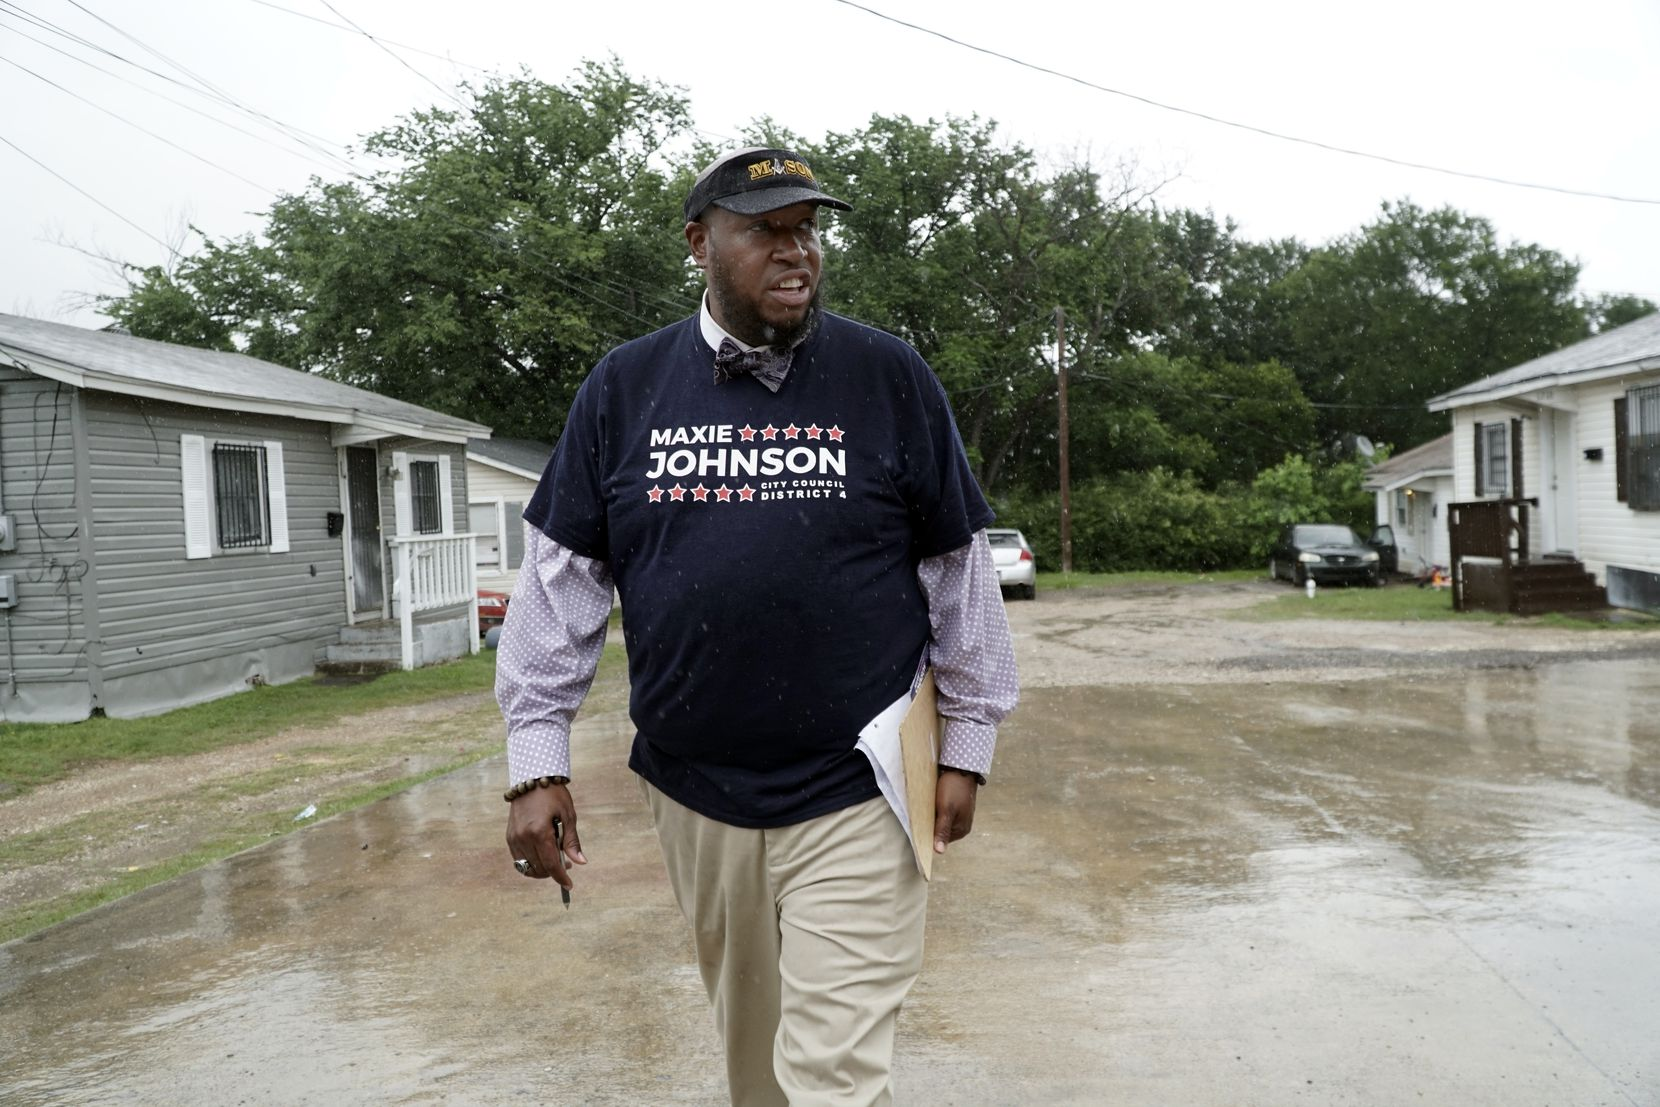 Maxie Johnson canvassed for voters in the Cedar Crest neighborhood in Dallas on May 20, 2021.